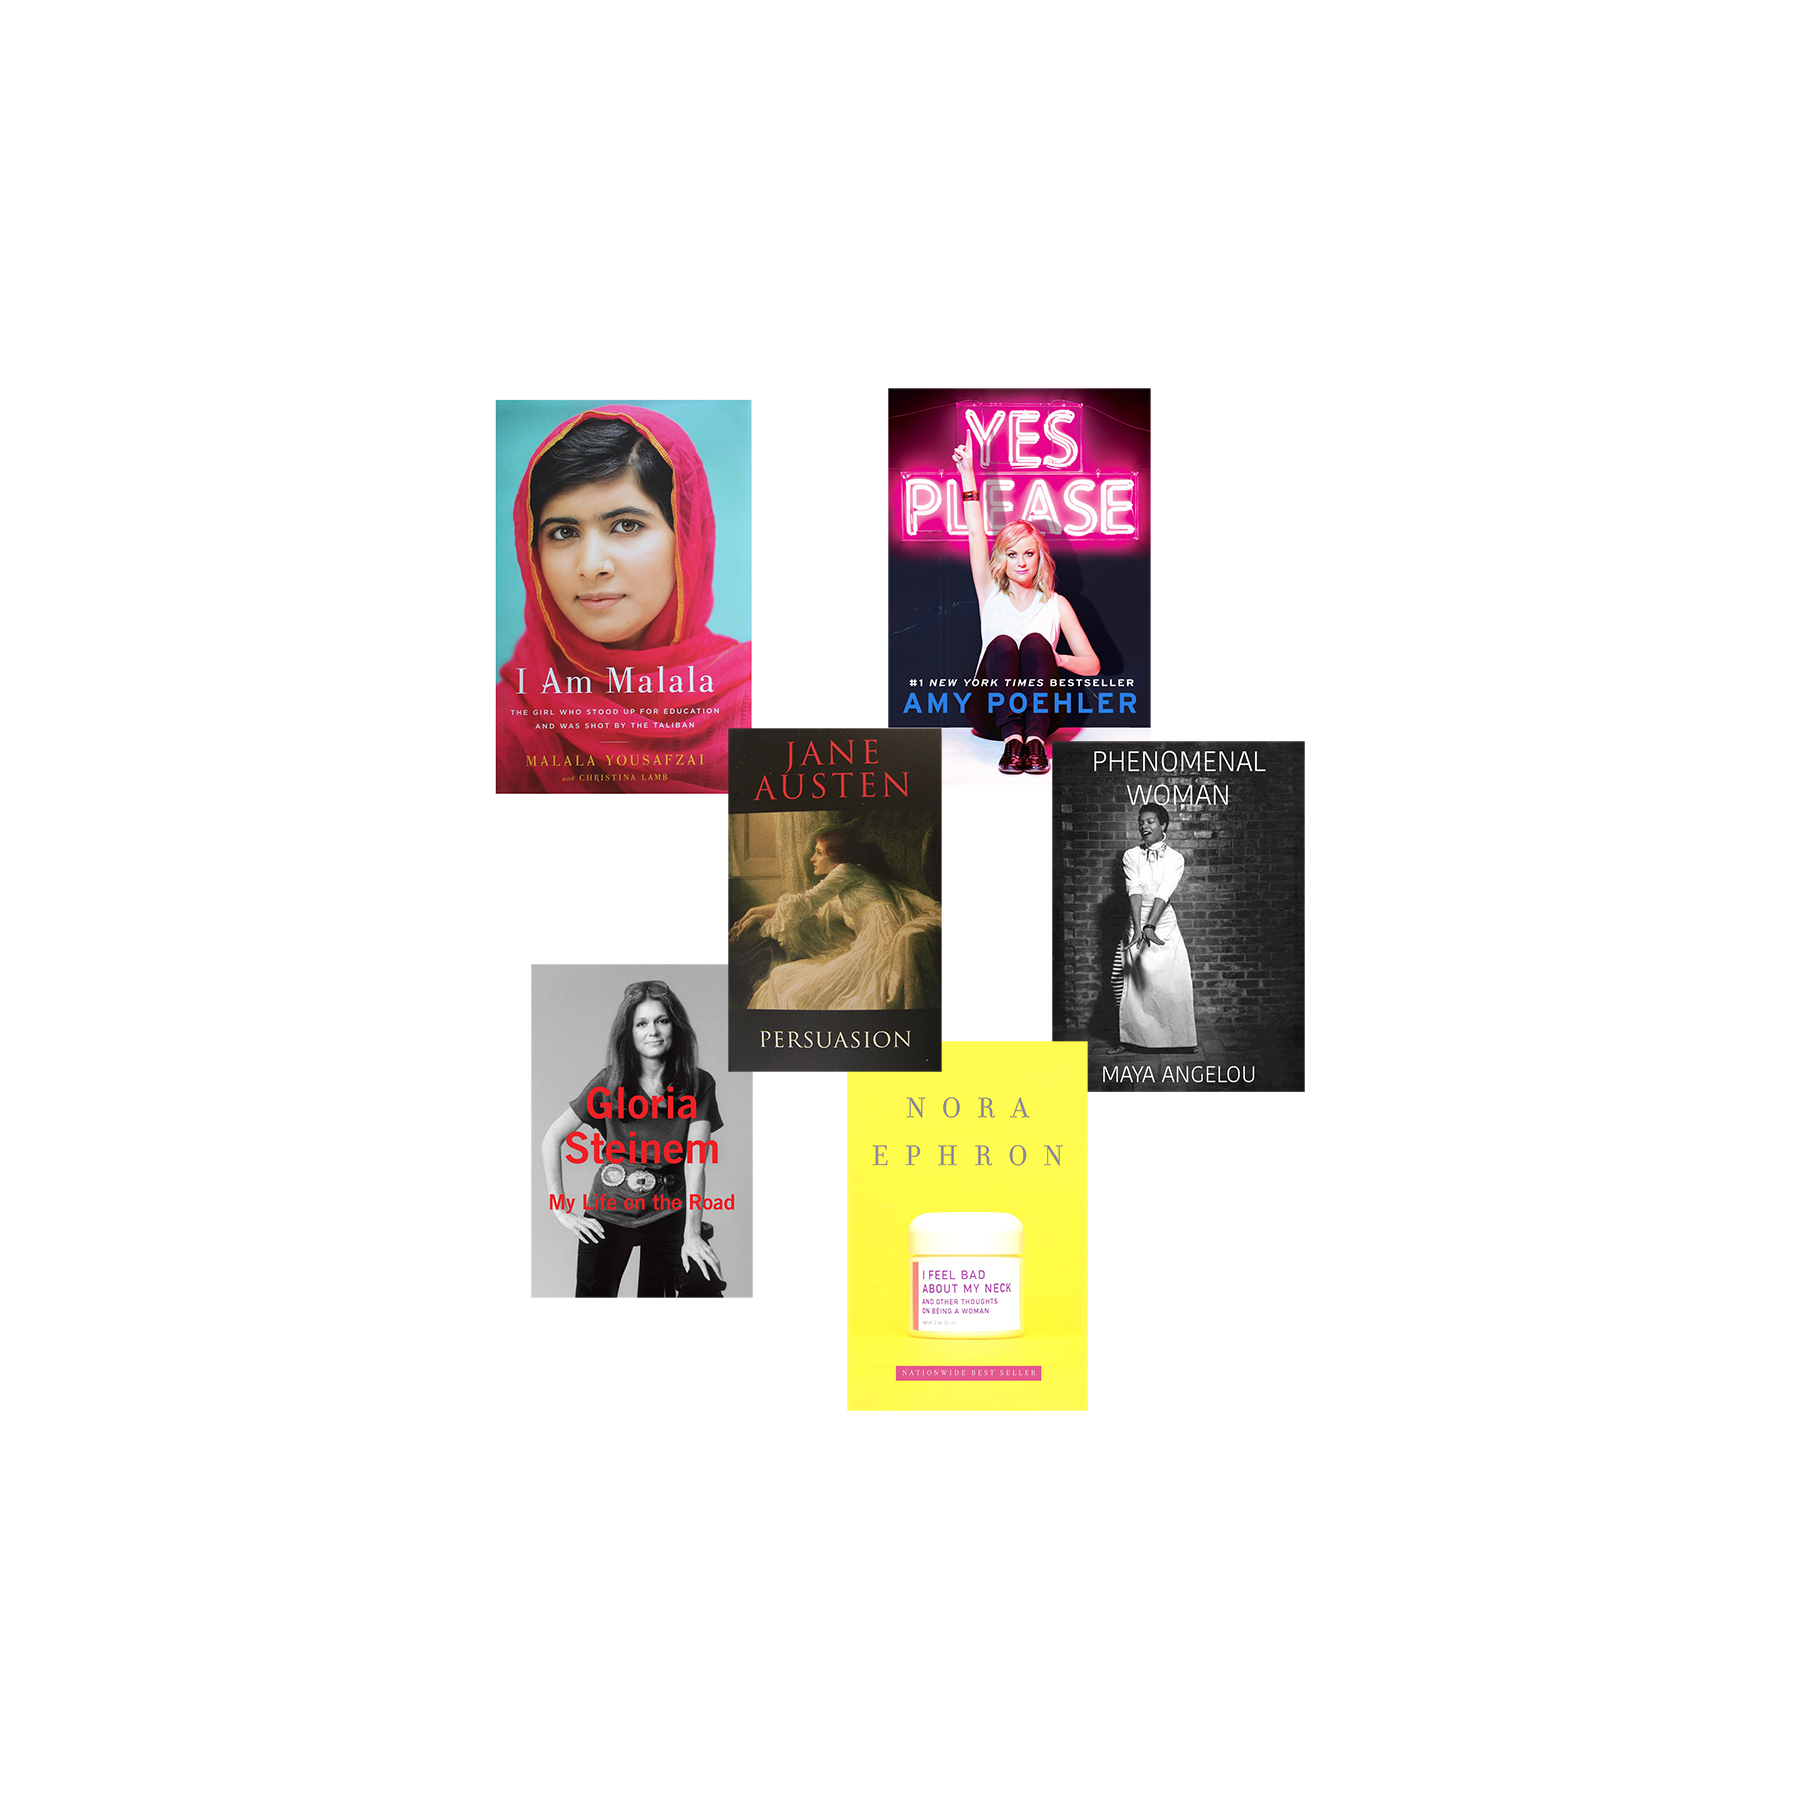 Books by female authors